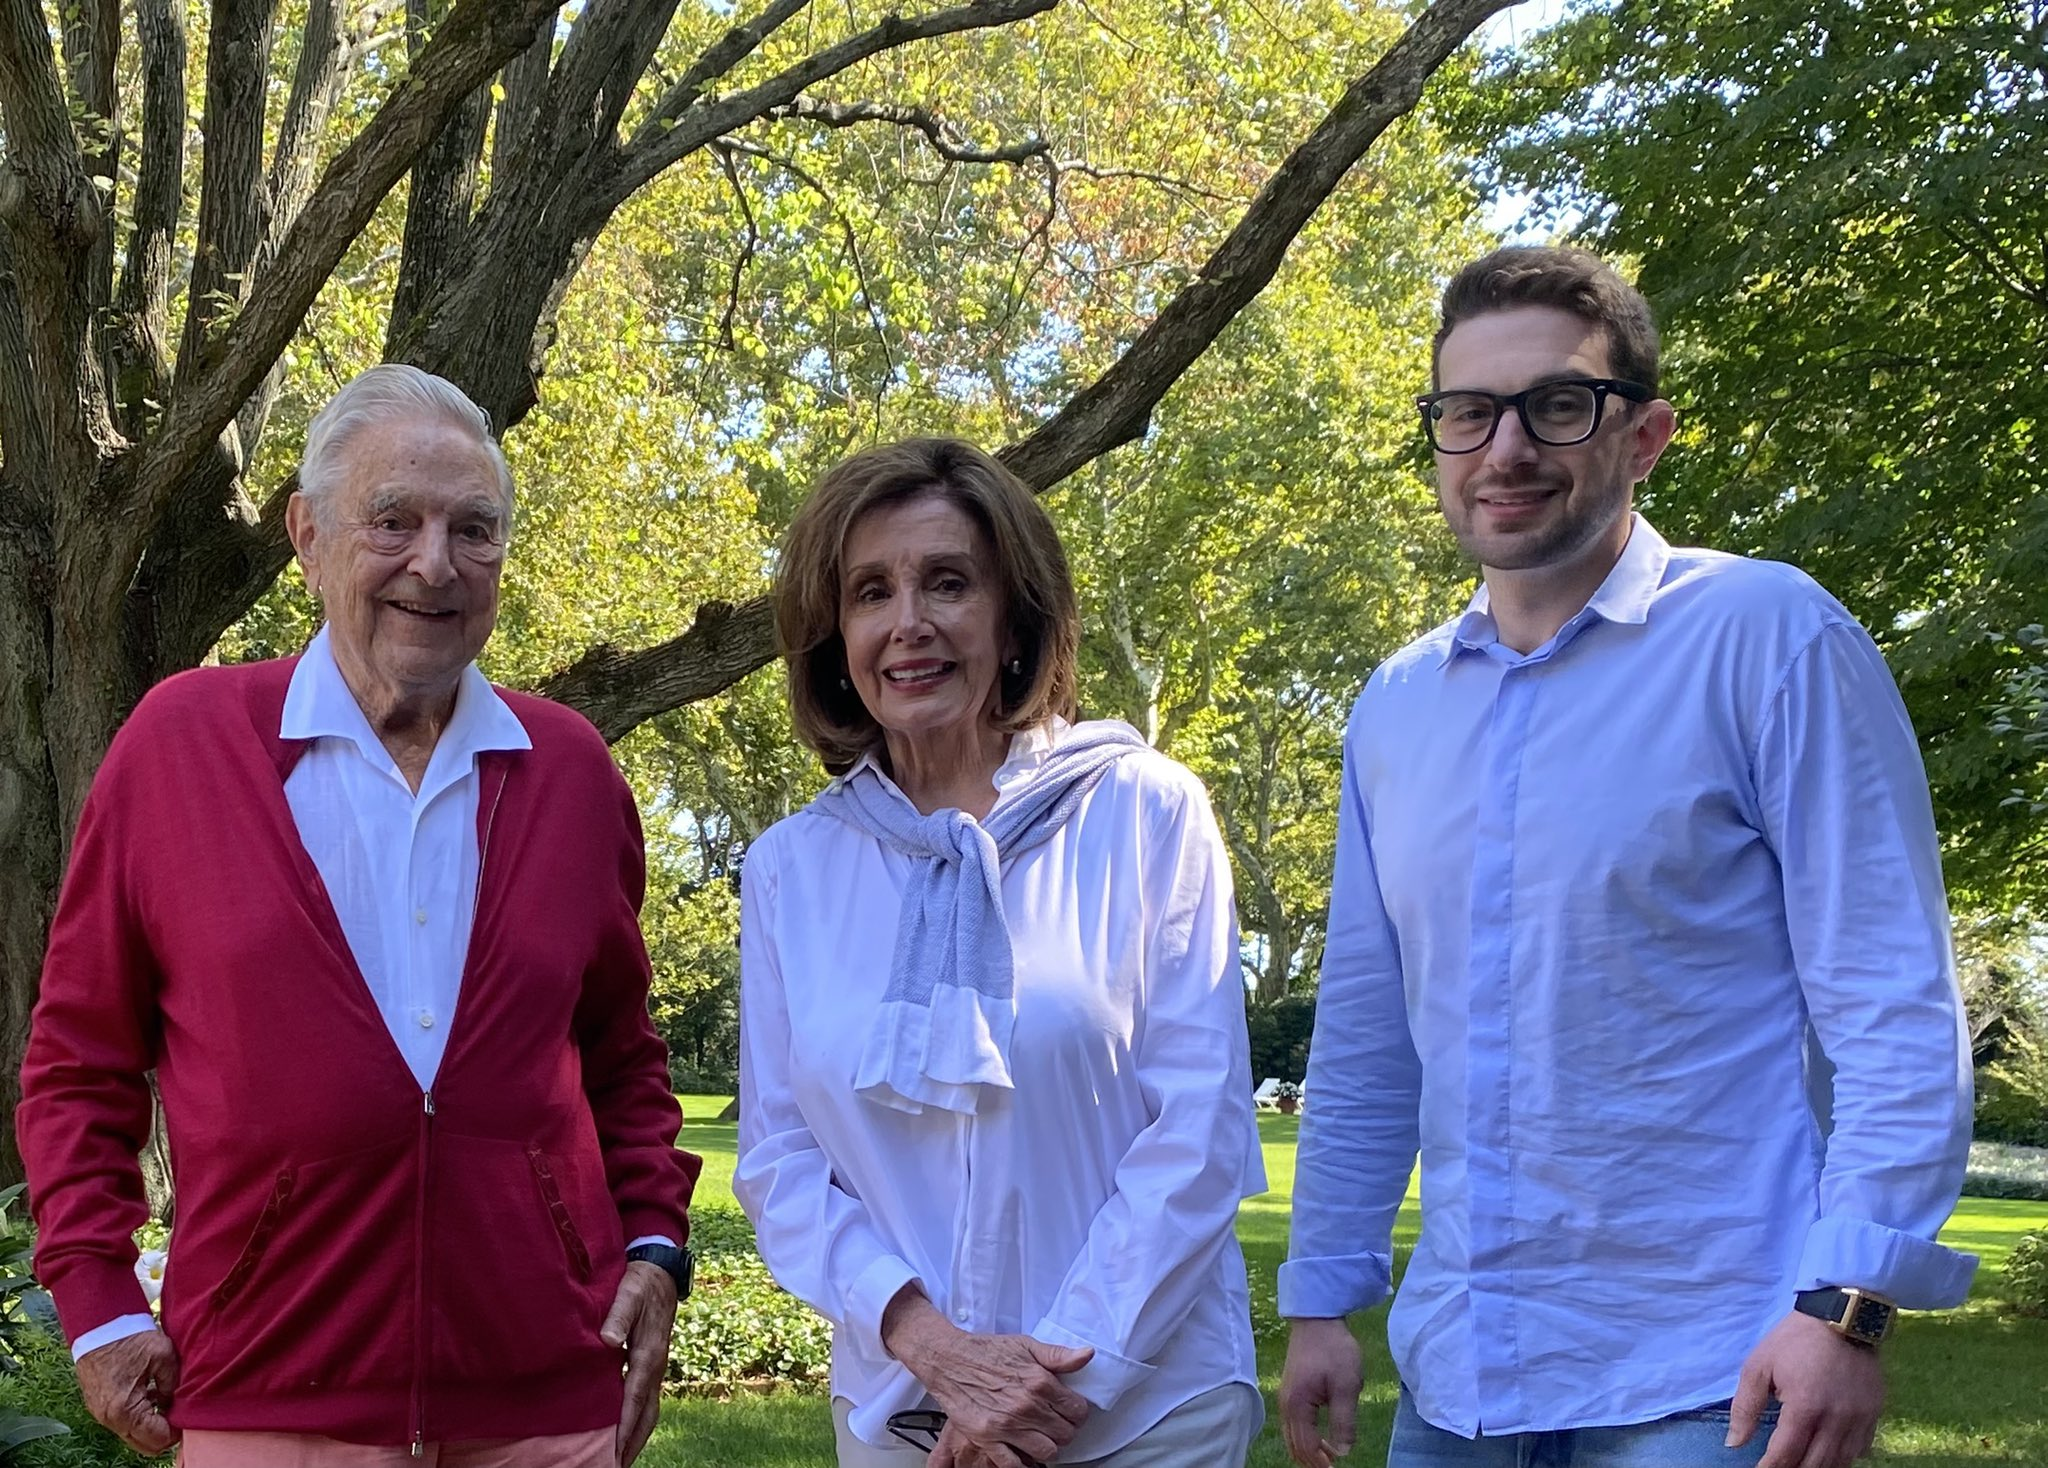 Pelosi with G Soros and son